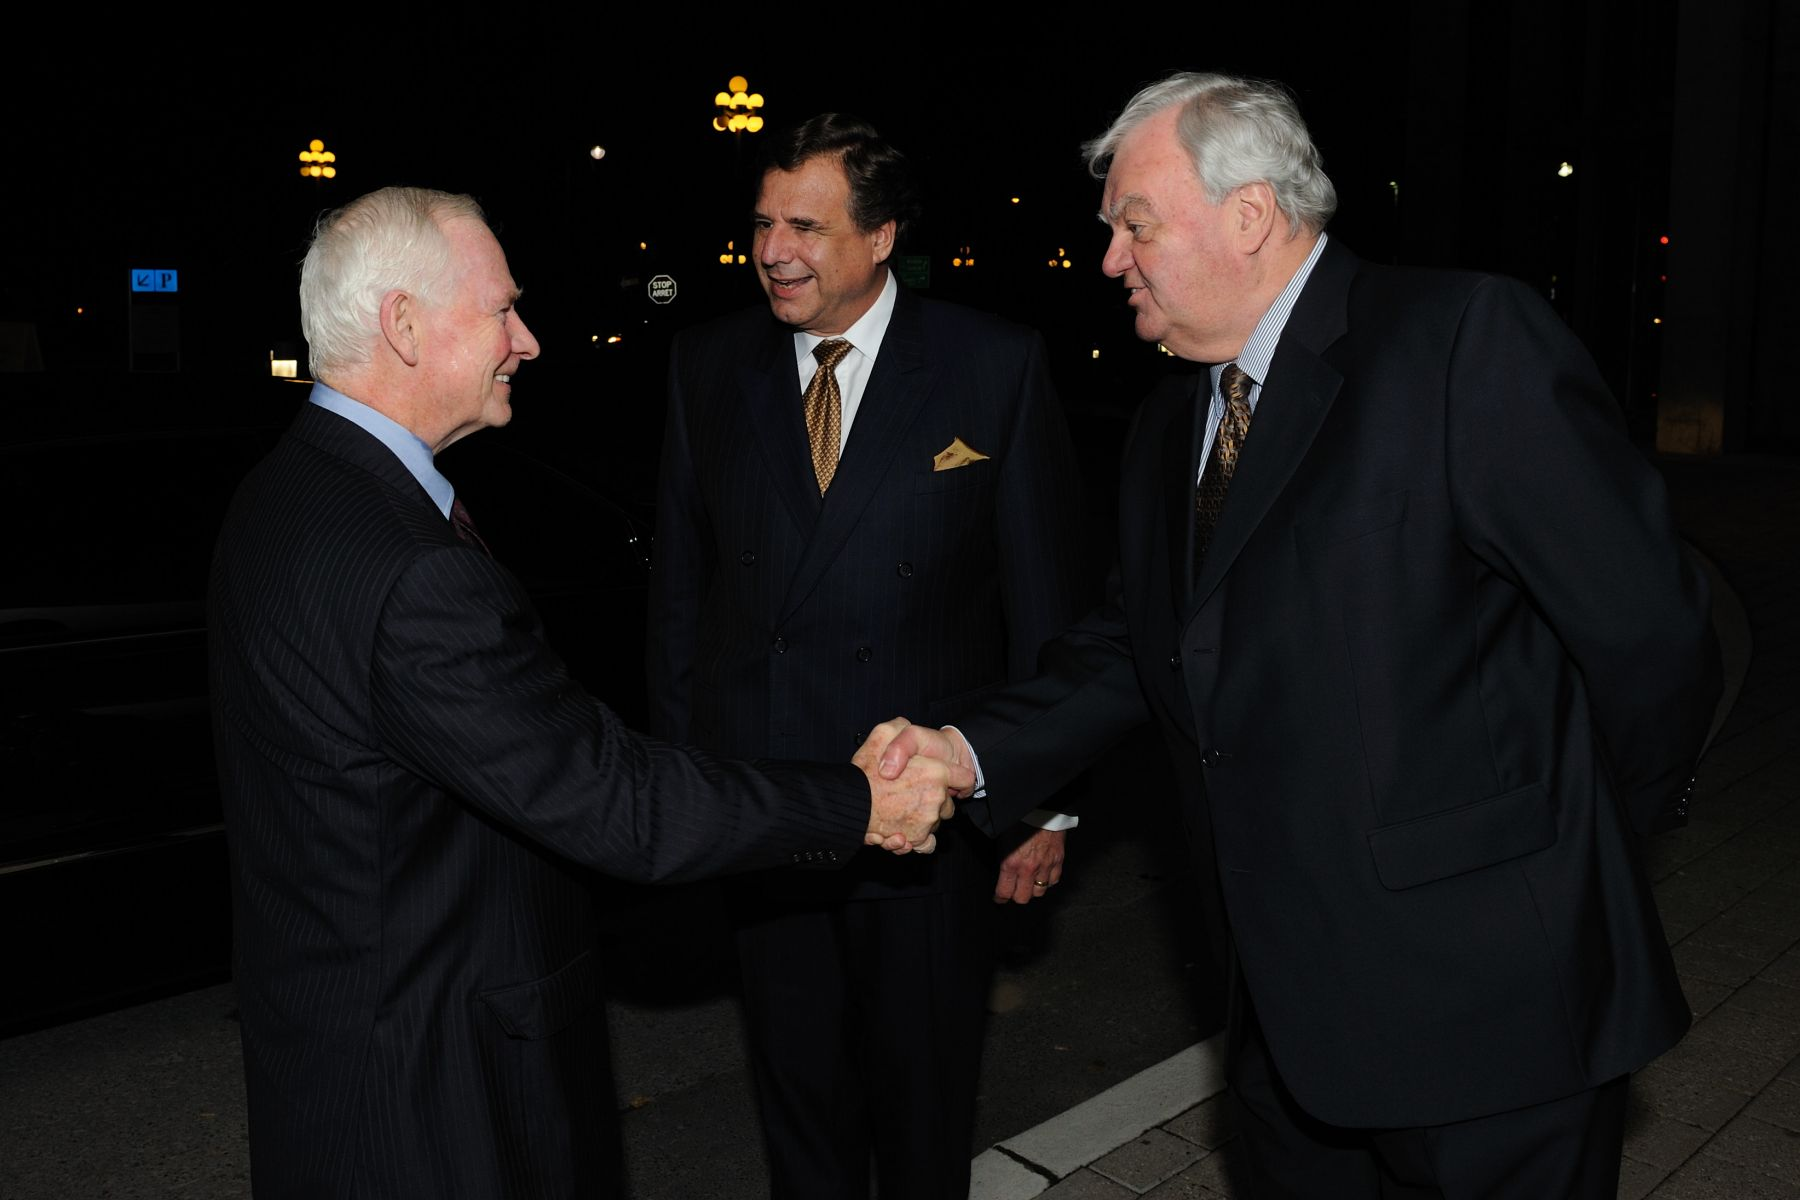 His Excellency the Right Honourable David Johnston, Governor General of Canada, attended the 2010 Canadian Health Research Awards—A Celebration of Excellence in Canadian Health Research. The ceremony took place at the National Gallery of Canada. Upon his arrival, the Governor General was greeted by the President of the Canadian Institutes of Health Research Dr. Beaudet (left) and the President of the Prix Galien Canada Jury Dr. Gagné (right).